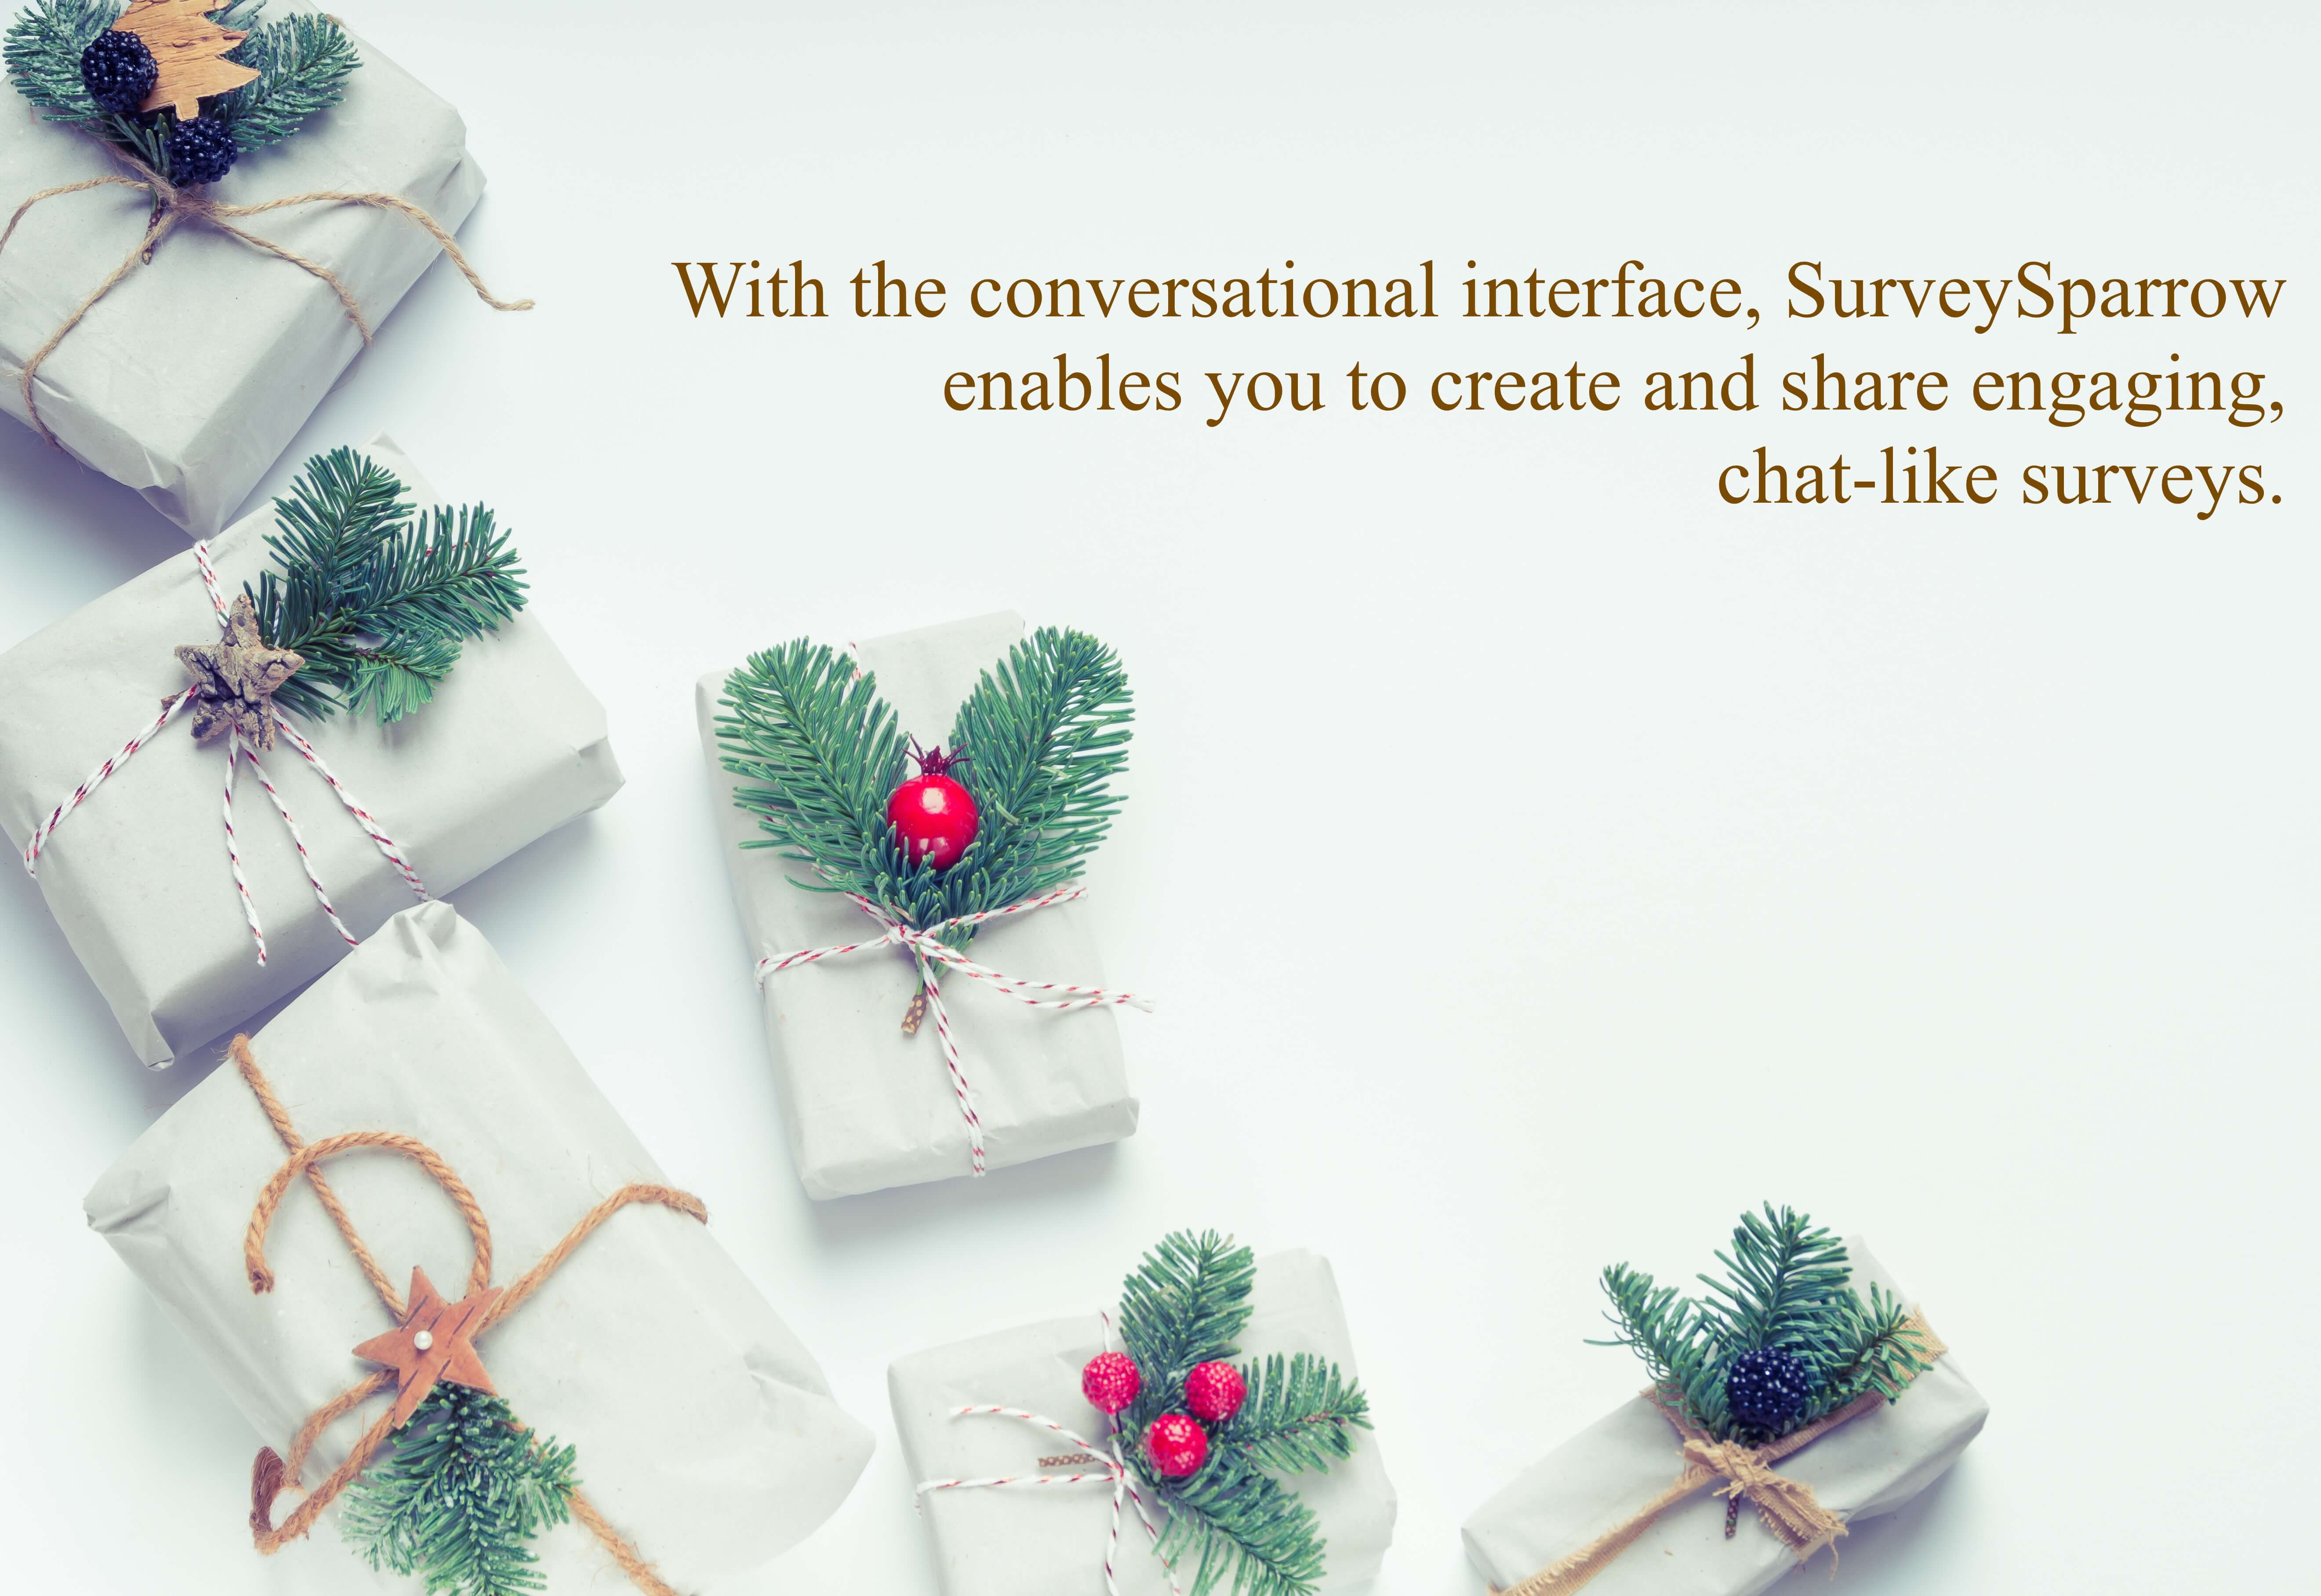 With the conversational interface, SurveySparrow enables you to create and share engaging, chat-like surveys.